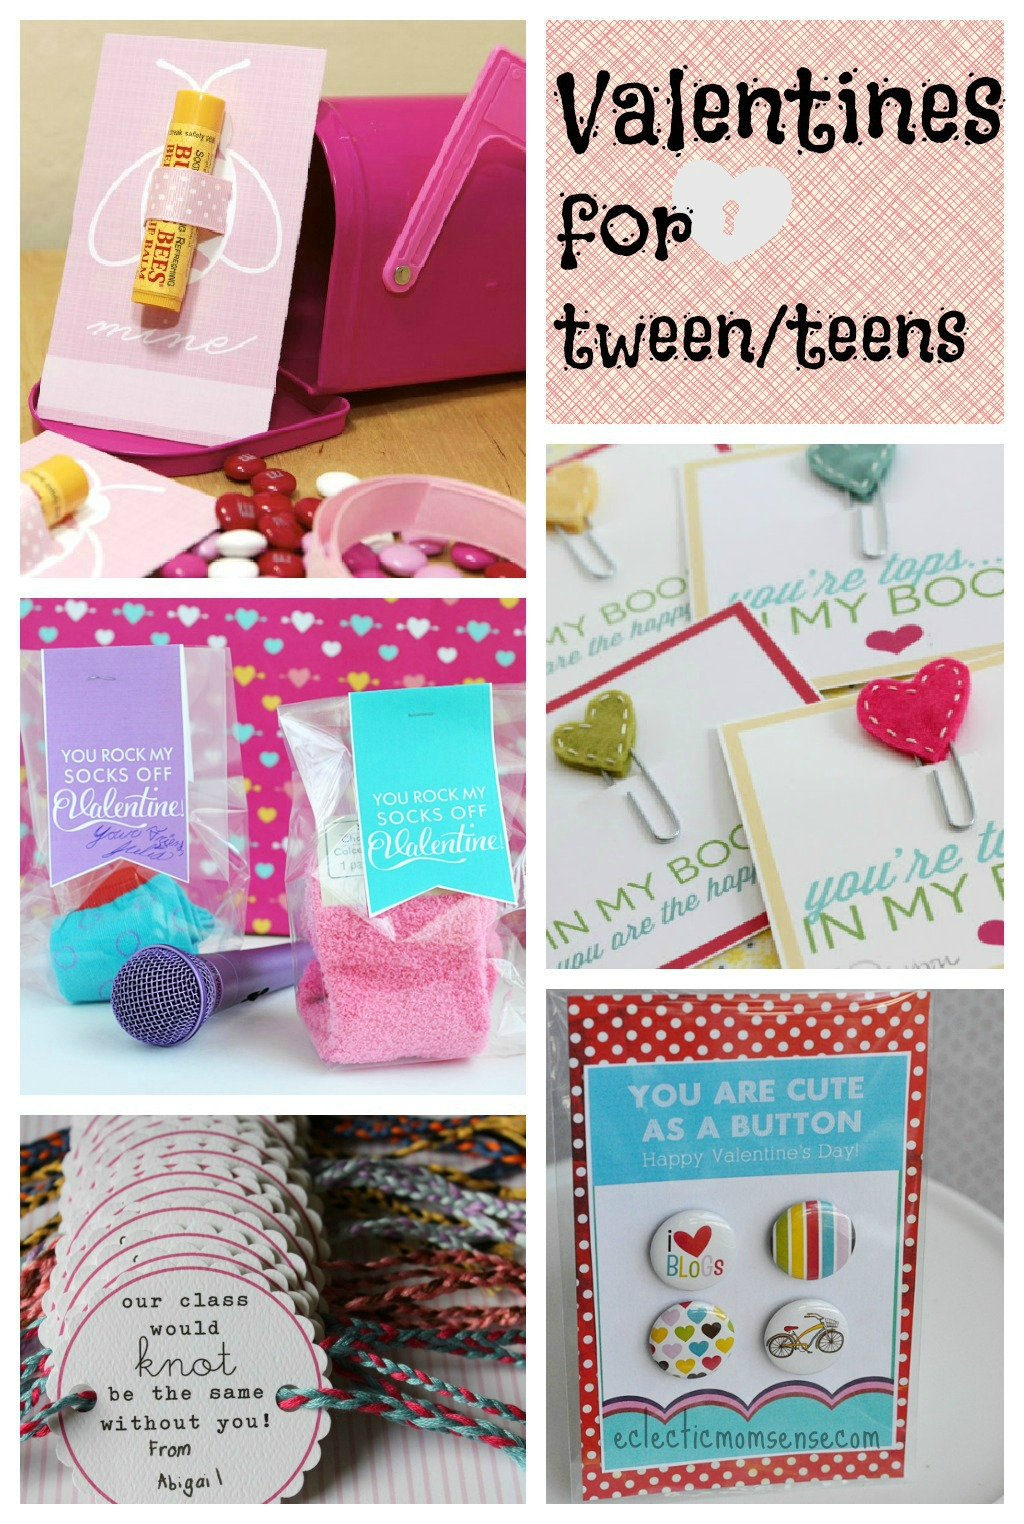 Valentines Ideas for Tween/Teens via @eclecticmommy - eclecticmomsense.com